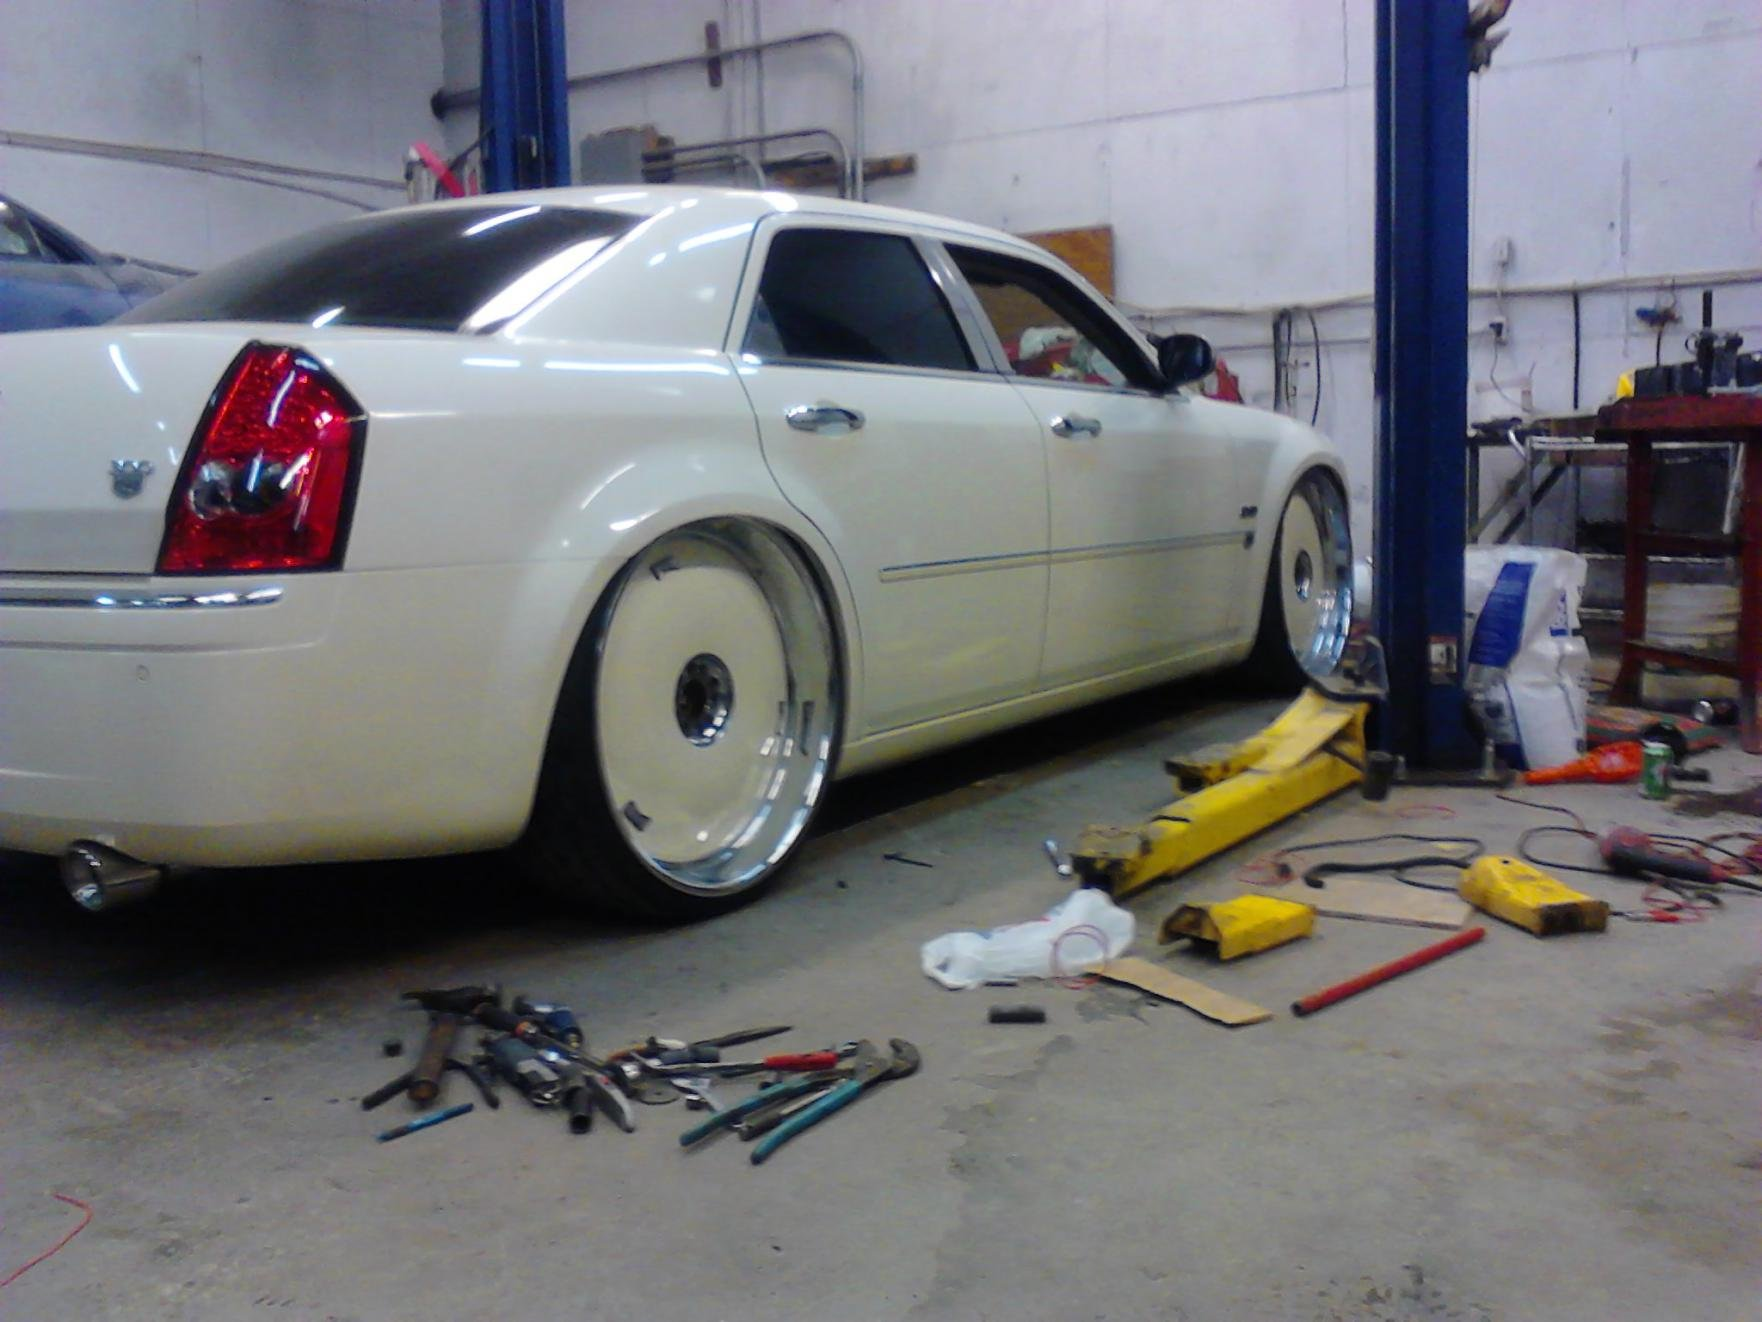 Chopped Bagged Pro Touring Monster furthermore Cmeetgreet in addition Chrysler C Odd Featured likewise D Has Any One Airbagged C S as well Au. on bagged chrysler 300 srt8